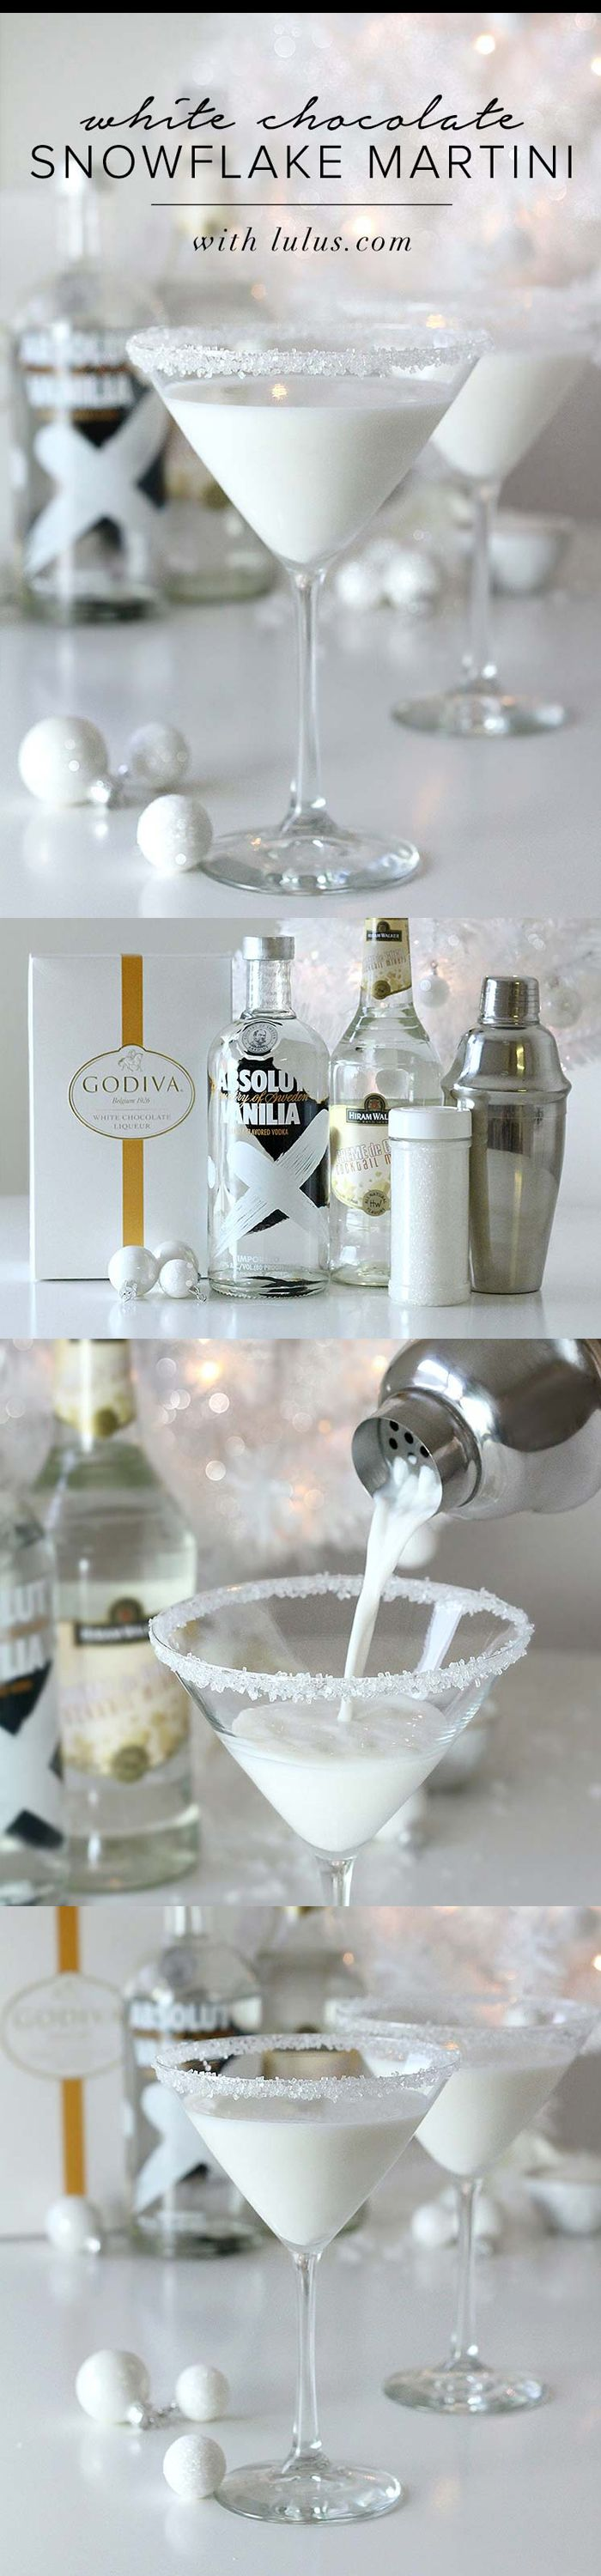 Emmy DE * Godiva white chocolate liquor, vanilla vodka and white creme de cocoa. I. MUST. TRY.